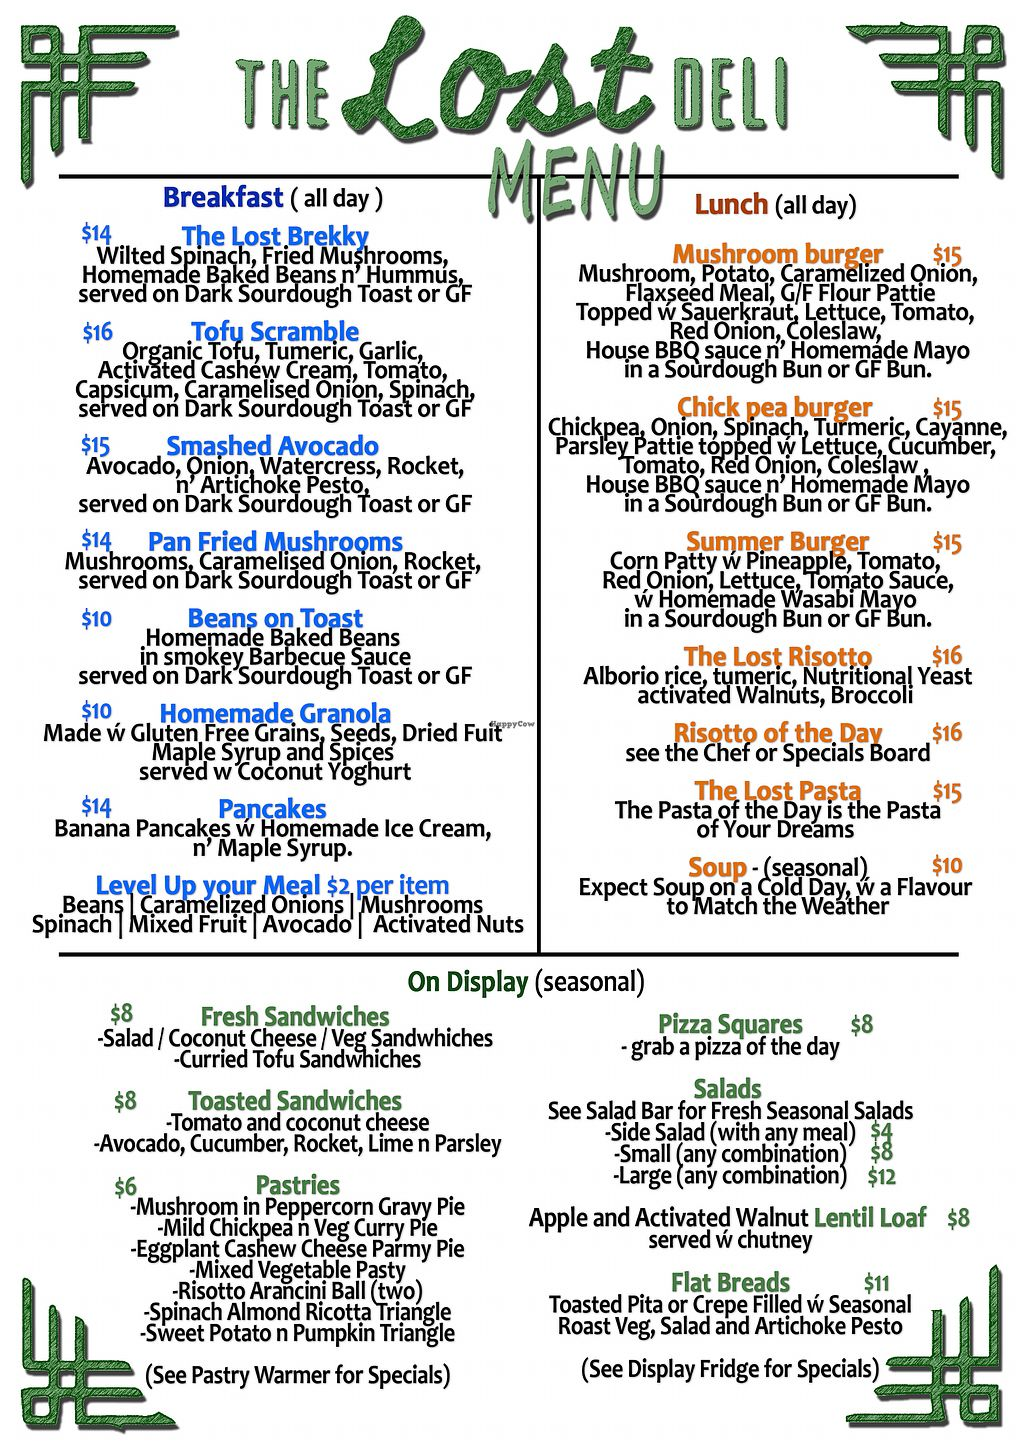 """Photo of The Lost Deli  by <a href=""""/members/profile/TheLostDeli"""">TheLostDeli</a> <br/>Food Menu <br/> March 3, 2018  - <a href='/contact/abuse/image/89723/366002'>Report</a>"""